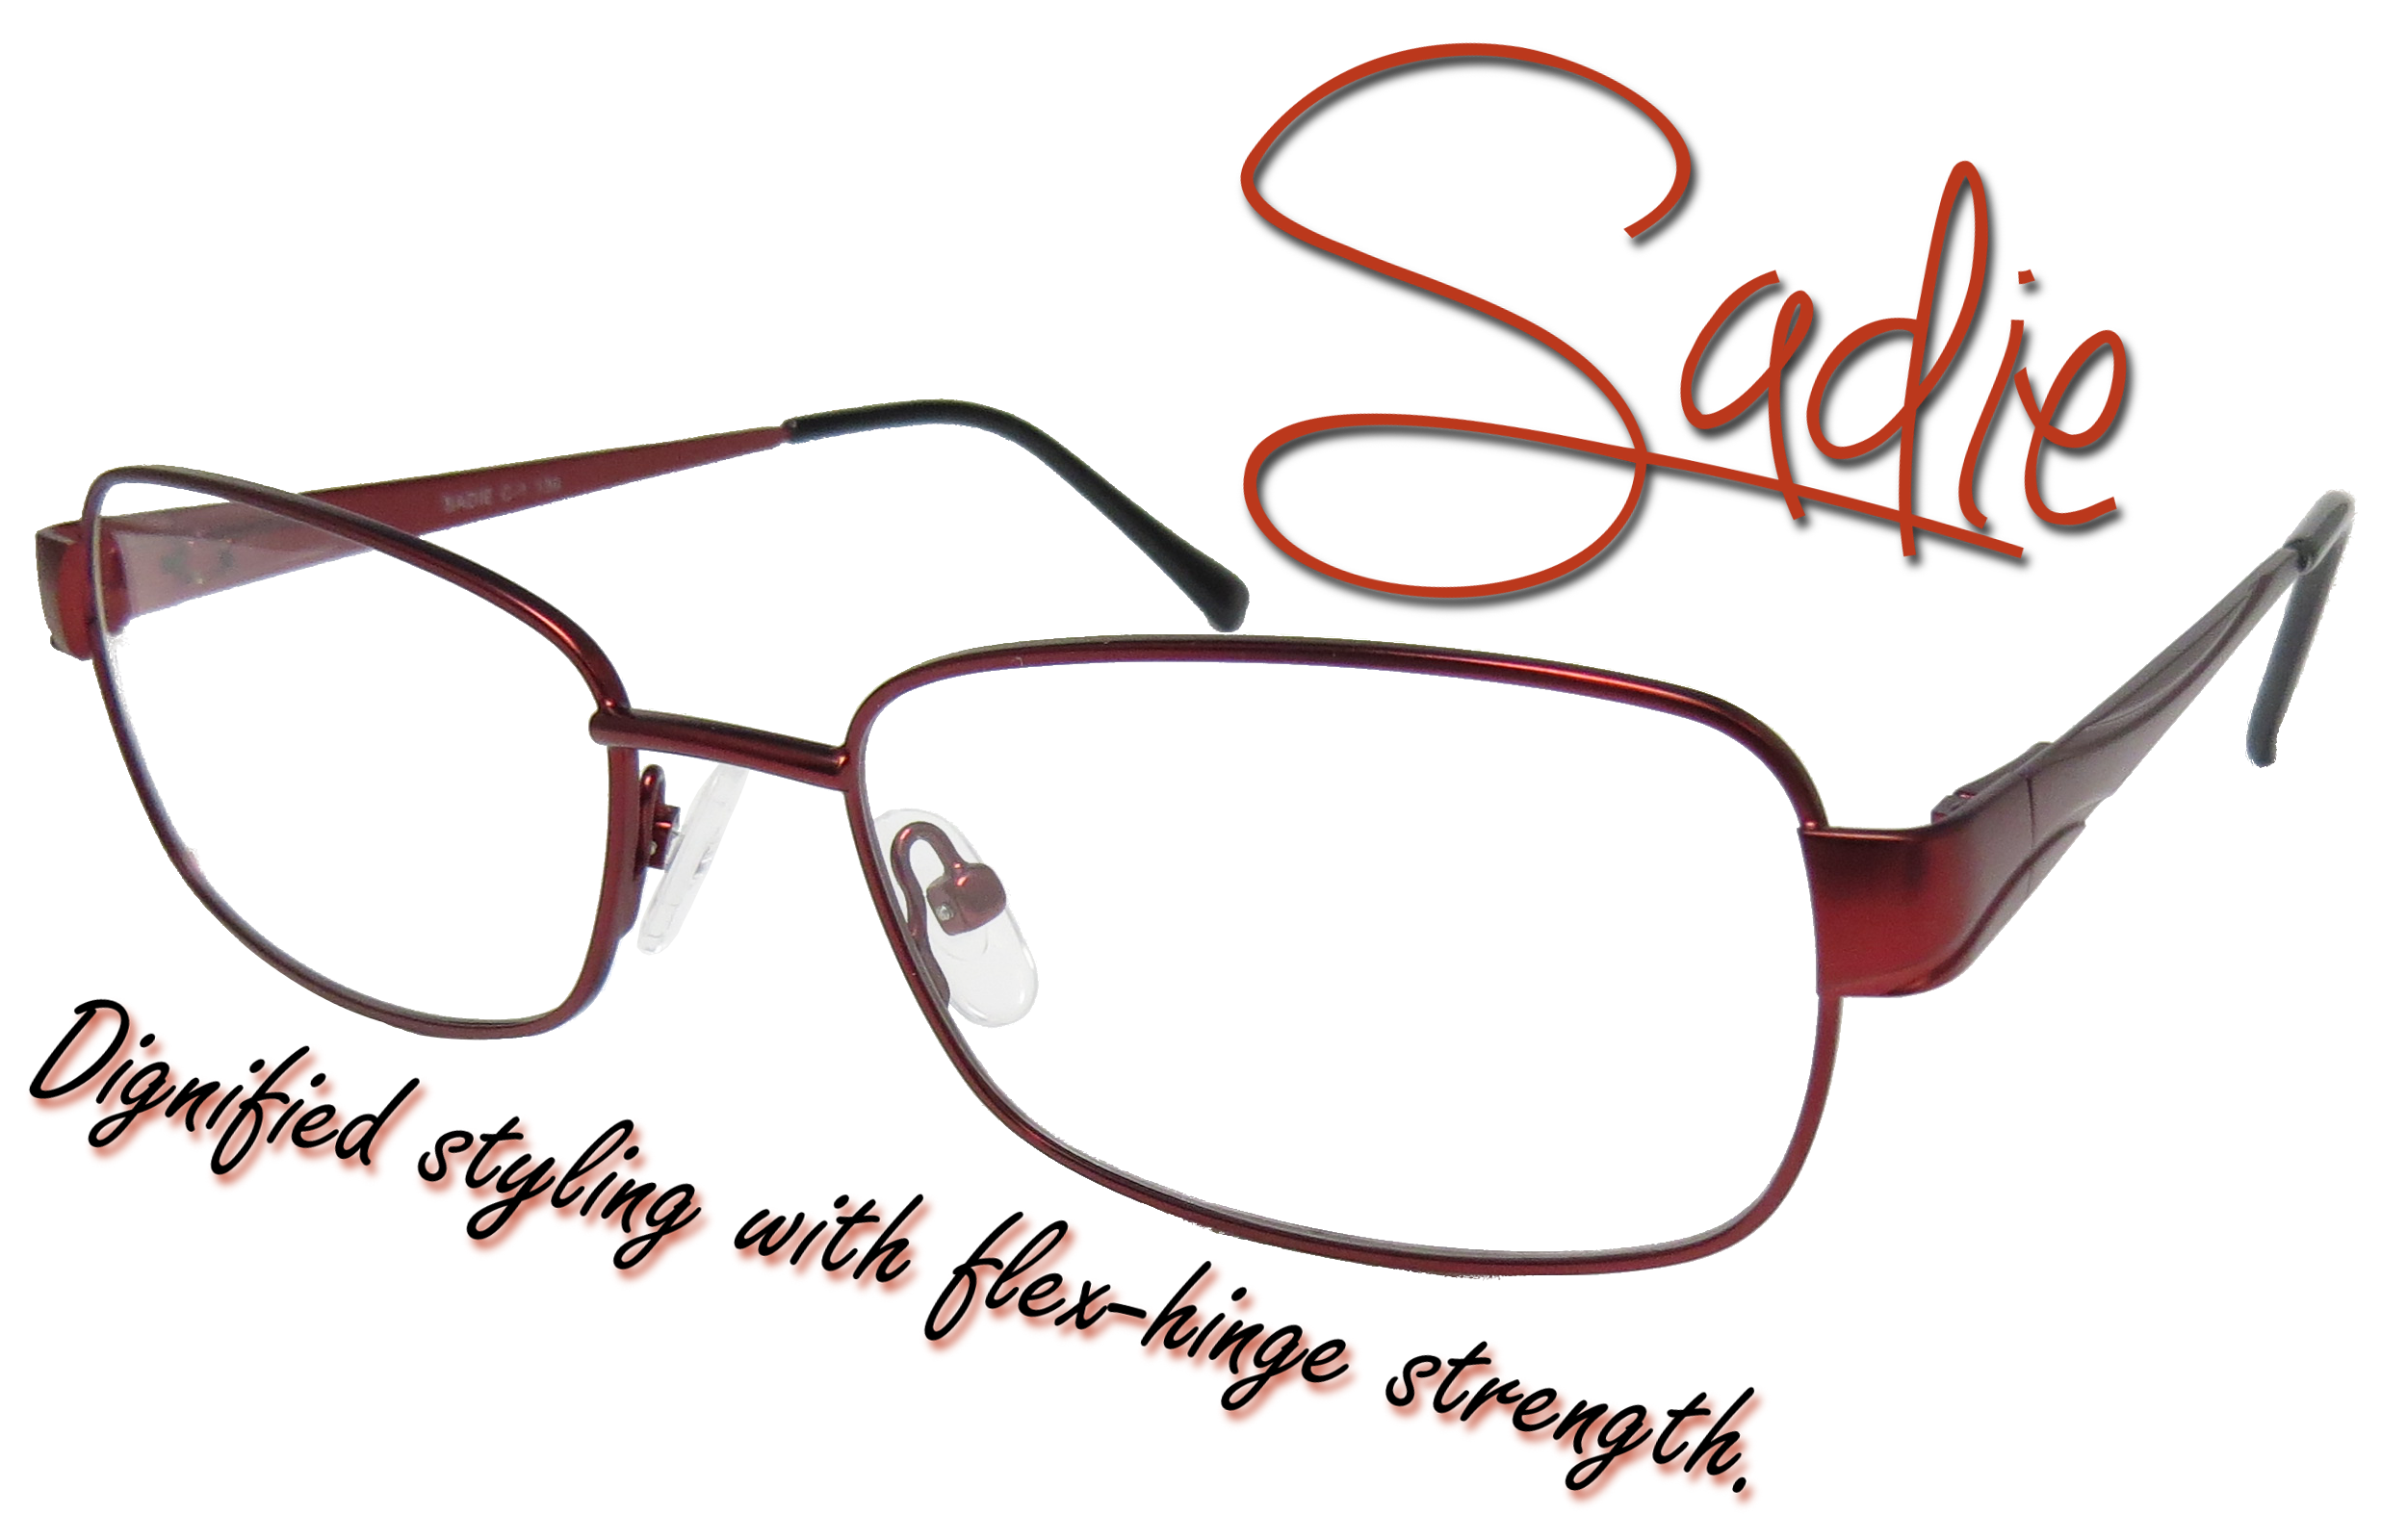 Sadie: Dignified styling with flex-hinge strength.